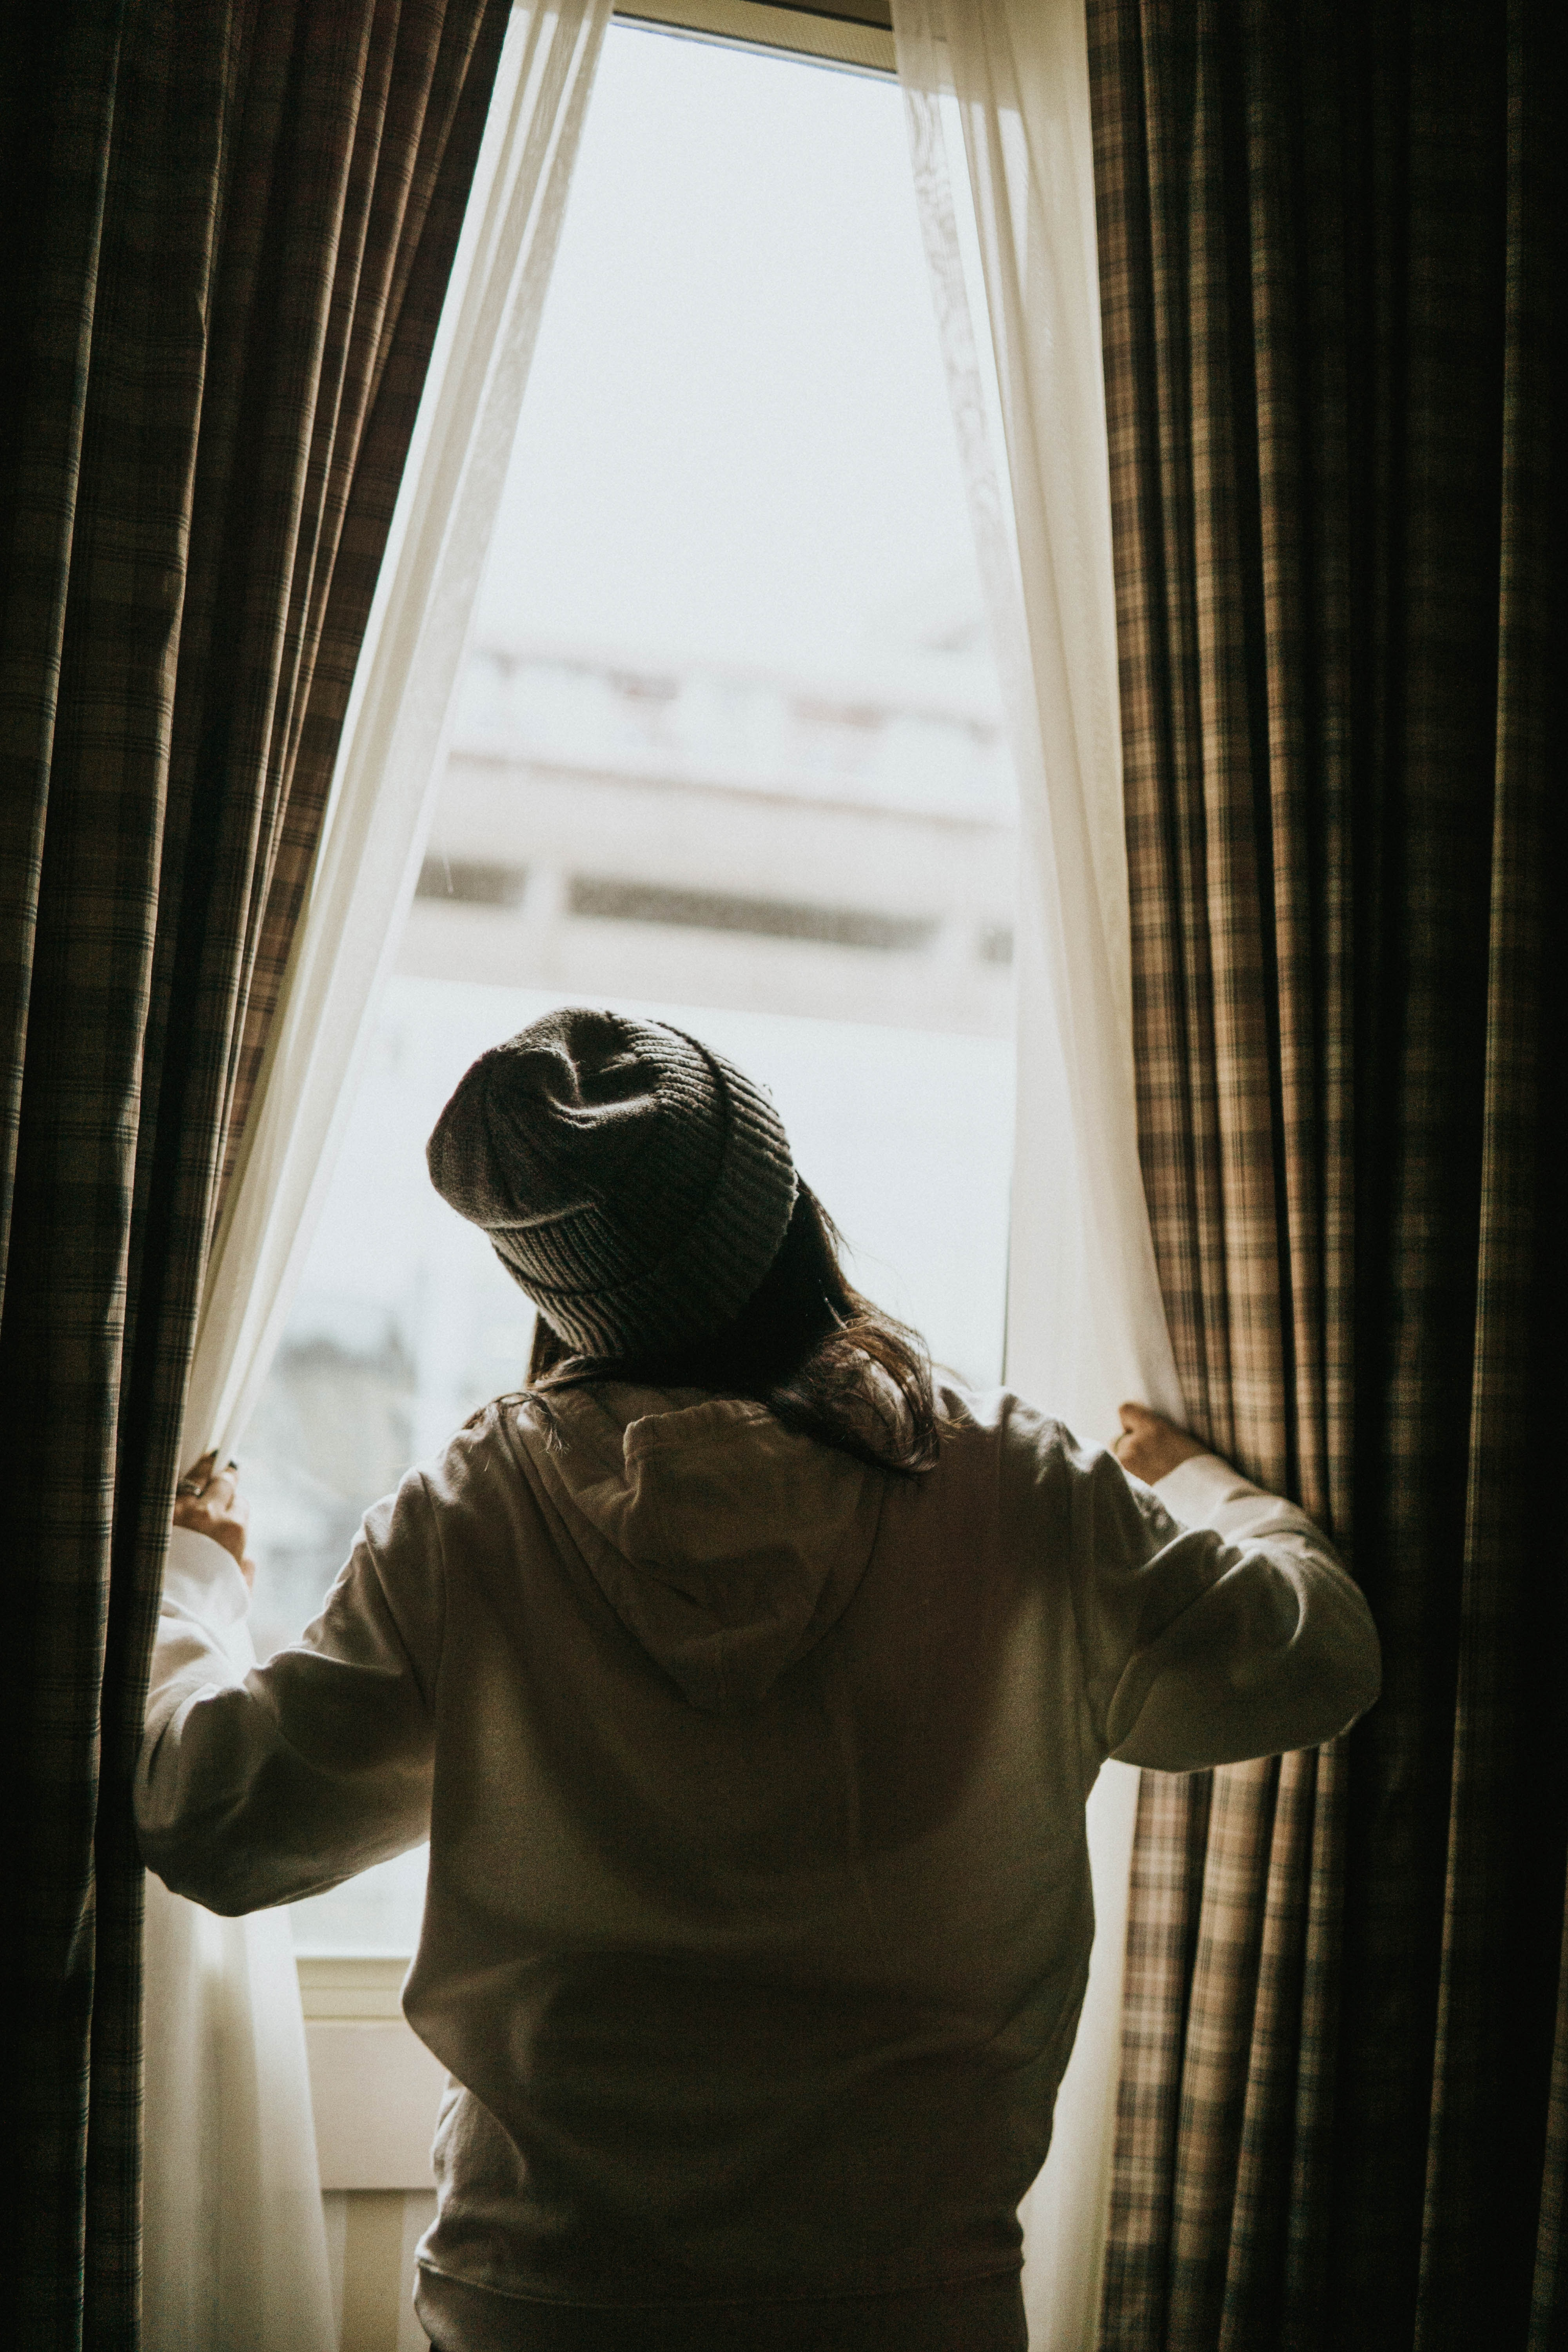 118053 download wallpaper Miscellanea, Miscellaneous, Silhouette, Curtains, Window, Look, Peek Out, Look Out screensavers and pictures for free